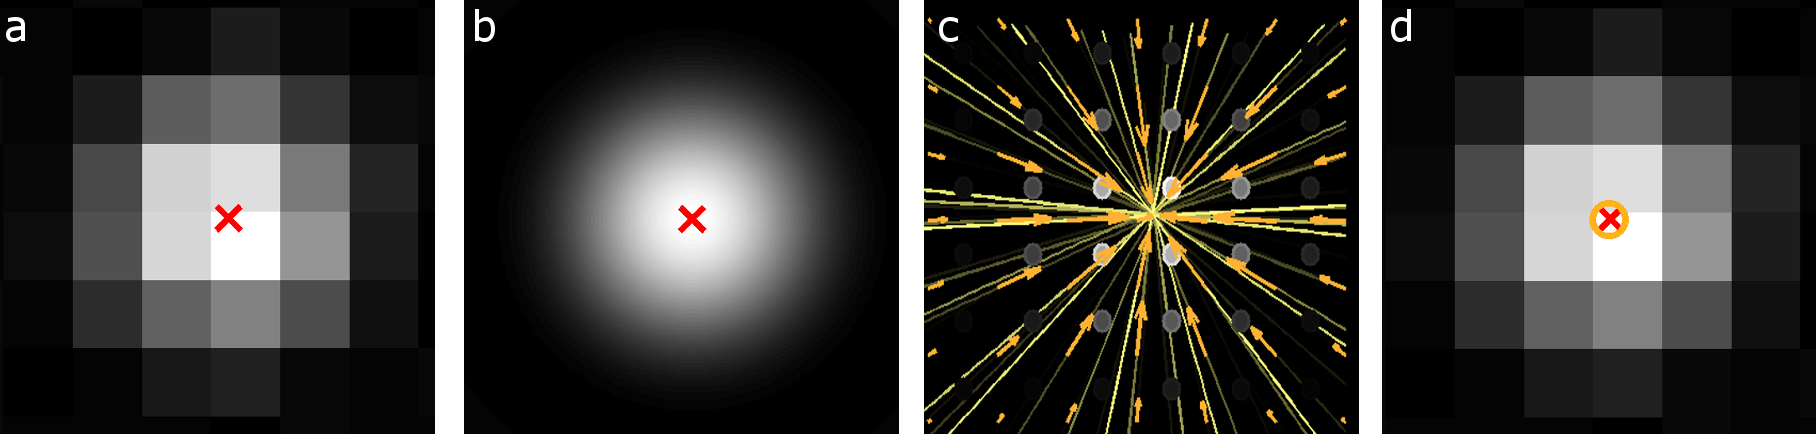 ParthasarathyLab: Particle Tracking